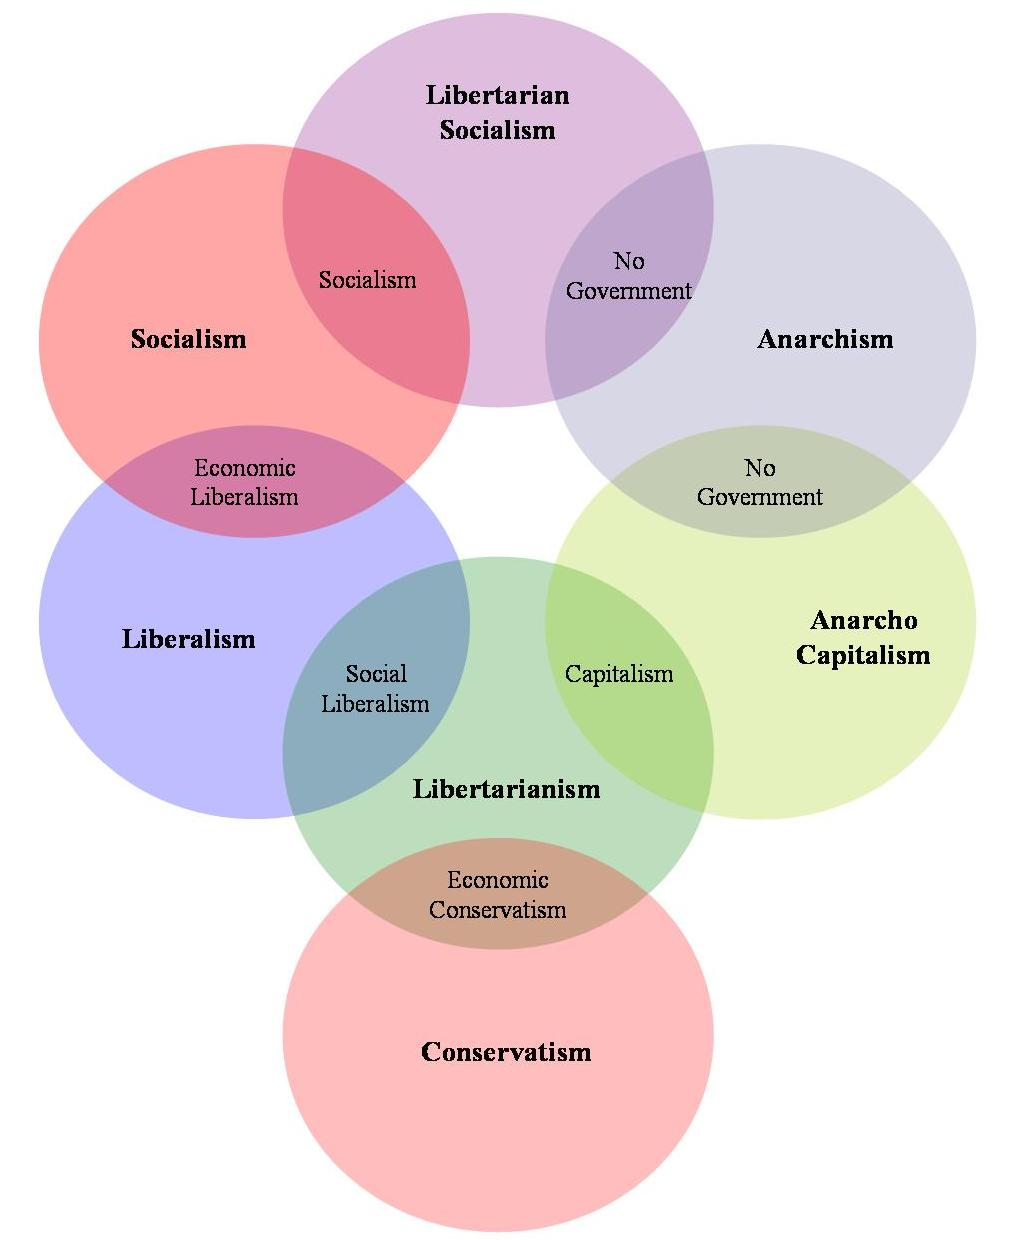 socialism and capitalism venn diagram power window fort universal 12v dc pragmatarianism political ideology diagrams here is the public goods spectrum scope of government bell curve on far left would provide all